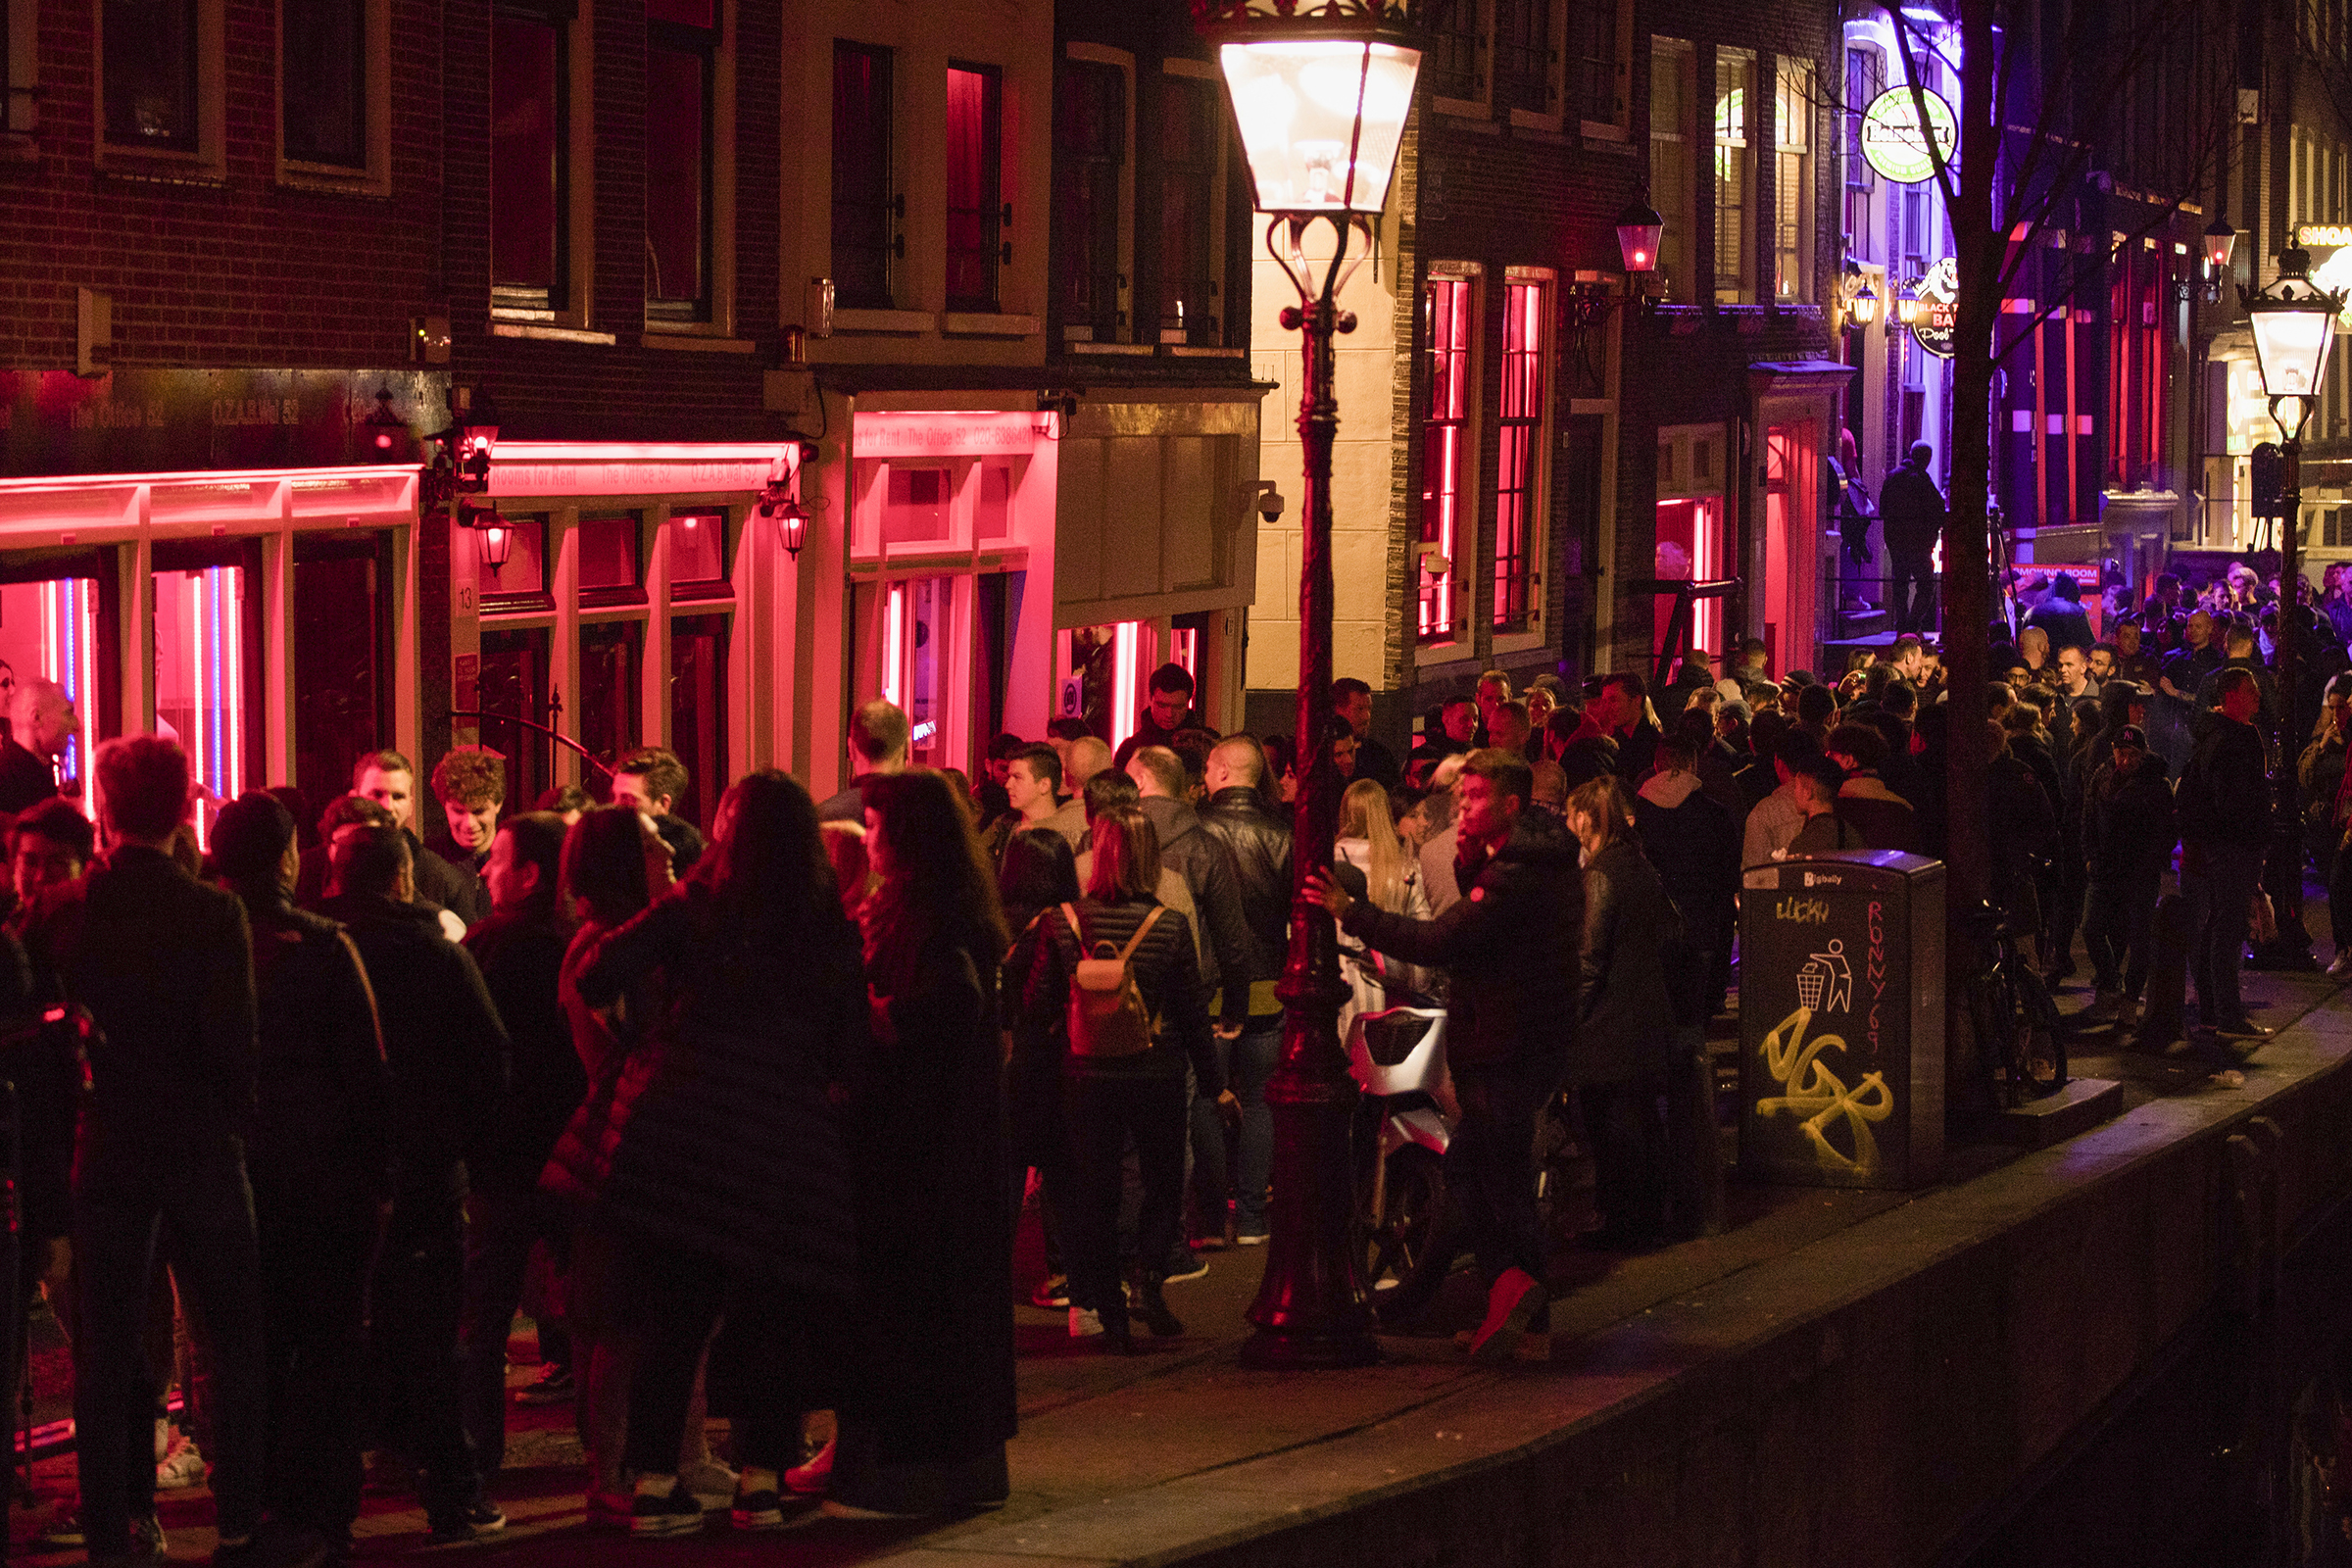 How COVID-19 Could Change Amsterdam's Red Light District | Time